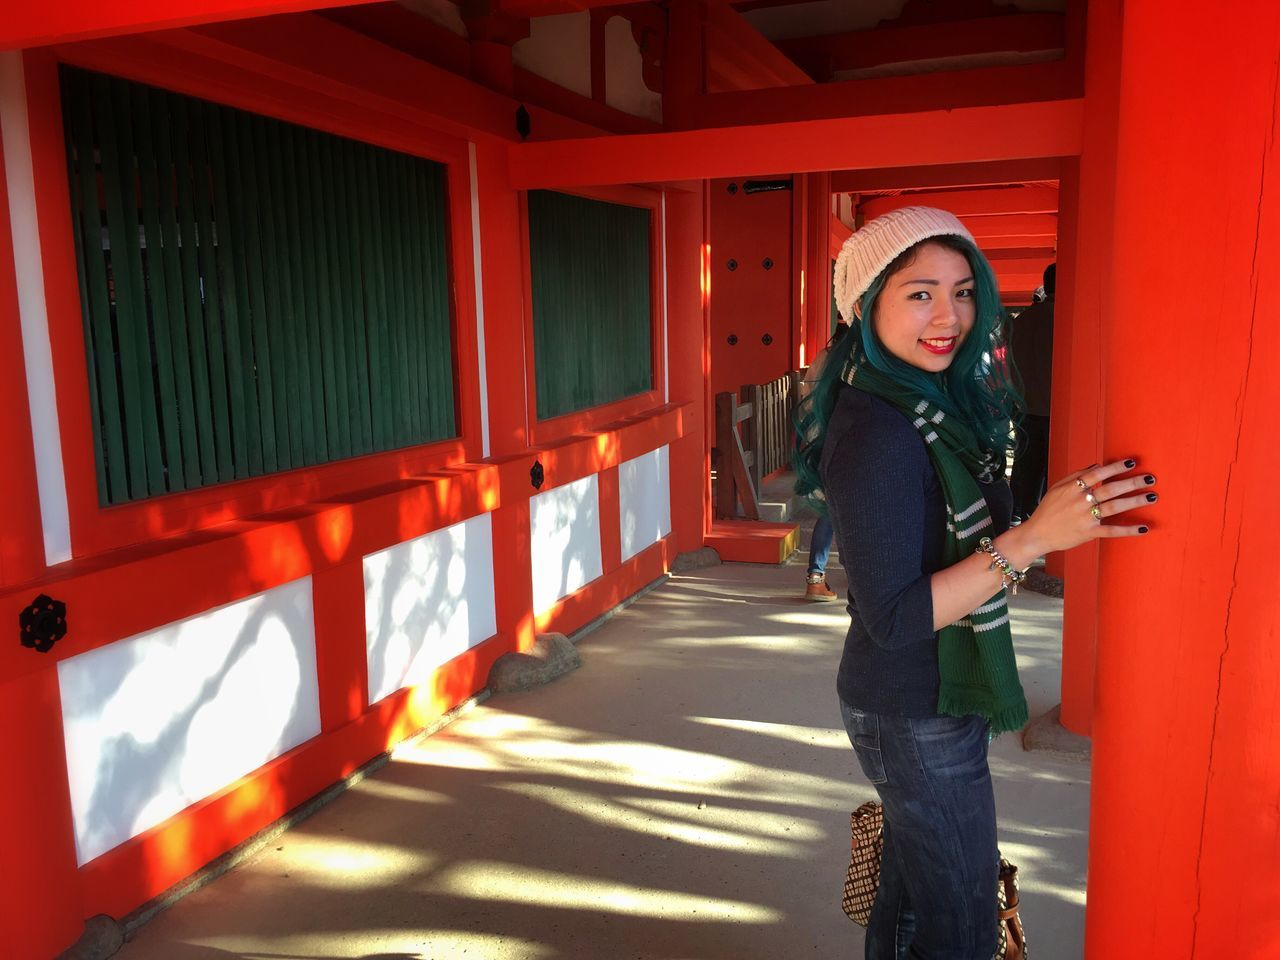 Travelling One Person Front View Real People Casual Clothing Lifestyles Full Length Looking At Camera Standing Young Adult Portrait Young Women Day Outdoors Architecture People Traveling Filipino Filipina IAmFilipina Wheninjapan Japan Japanese Culture Travel Kasuga Taisha